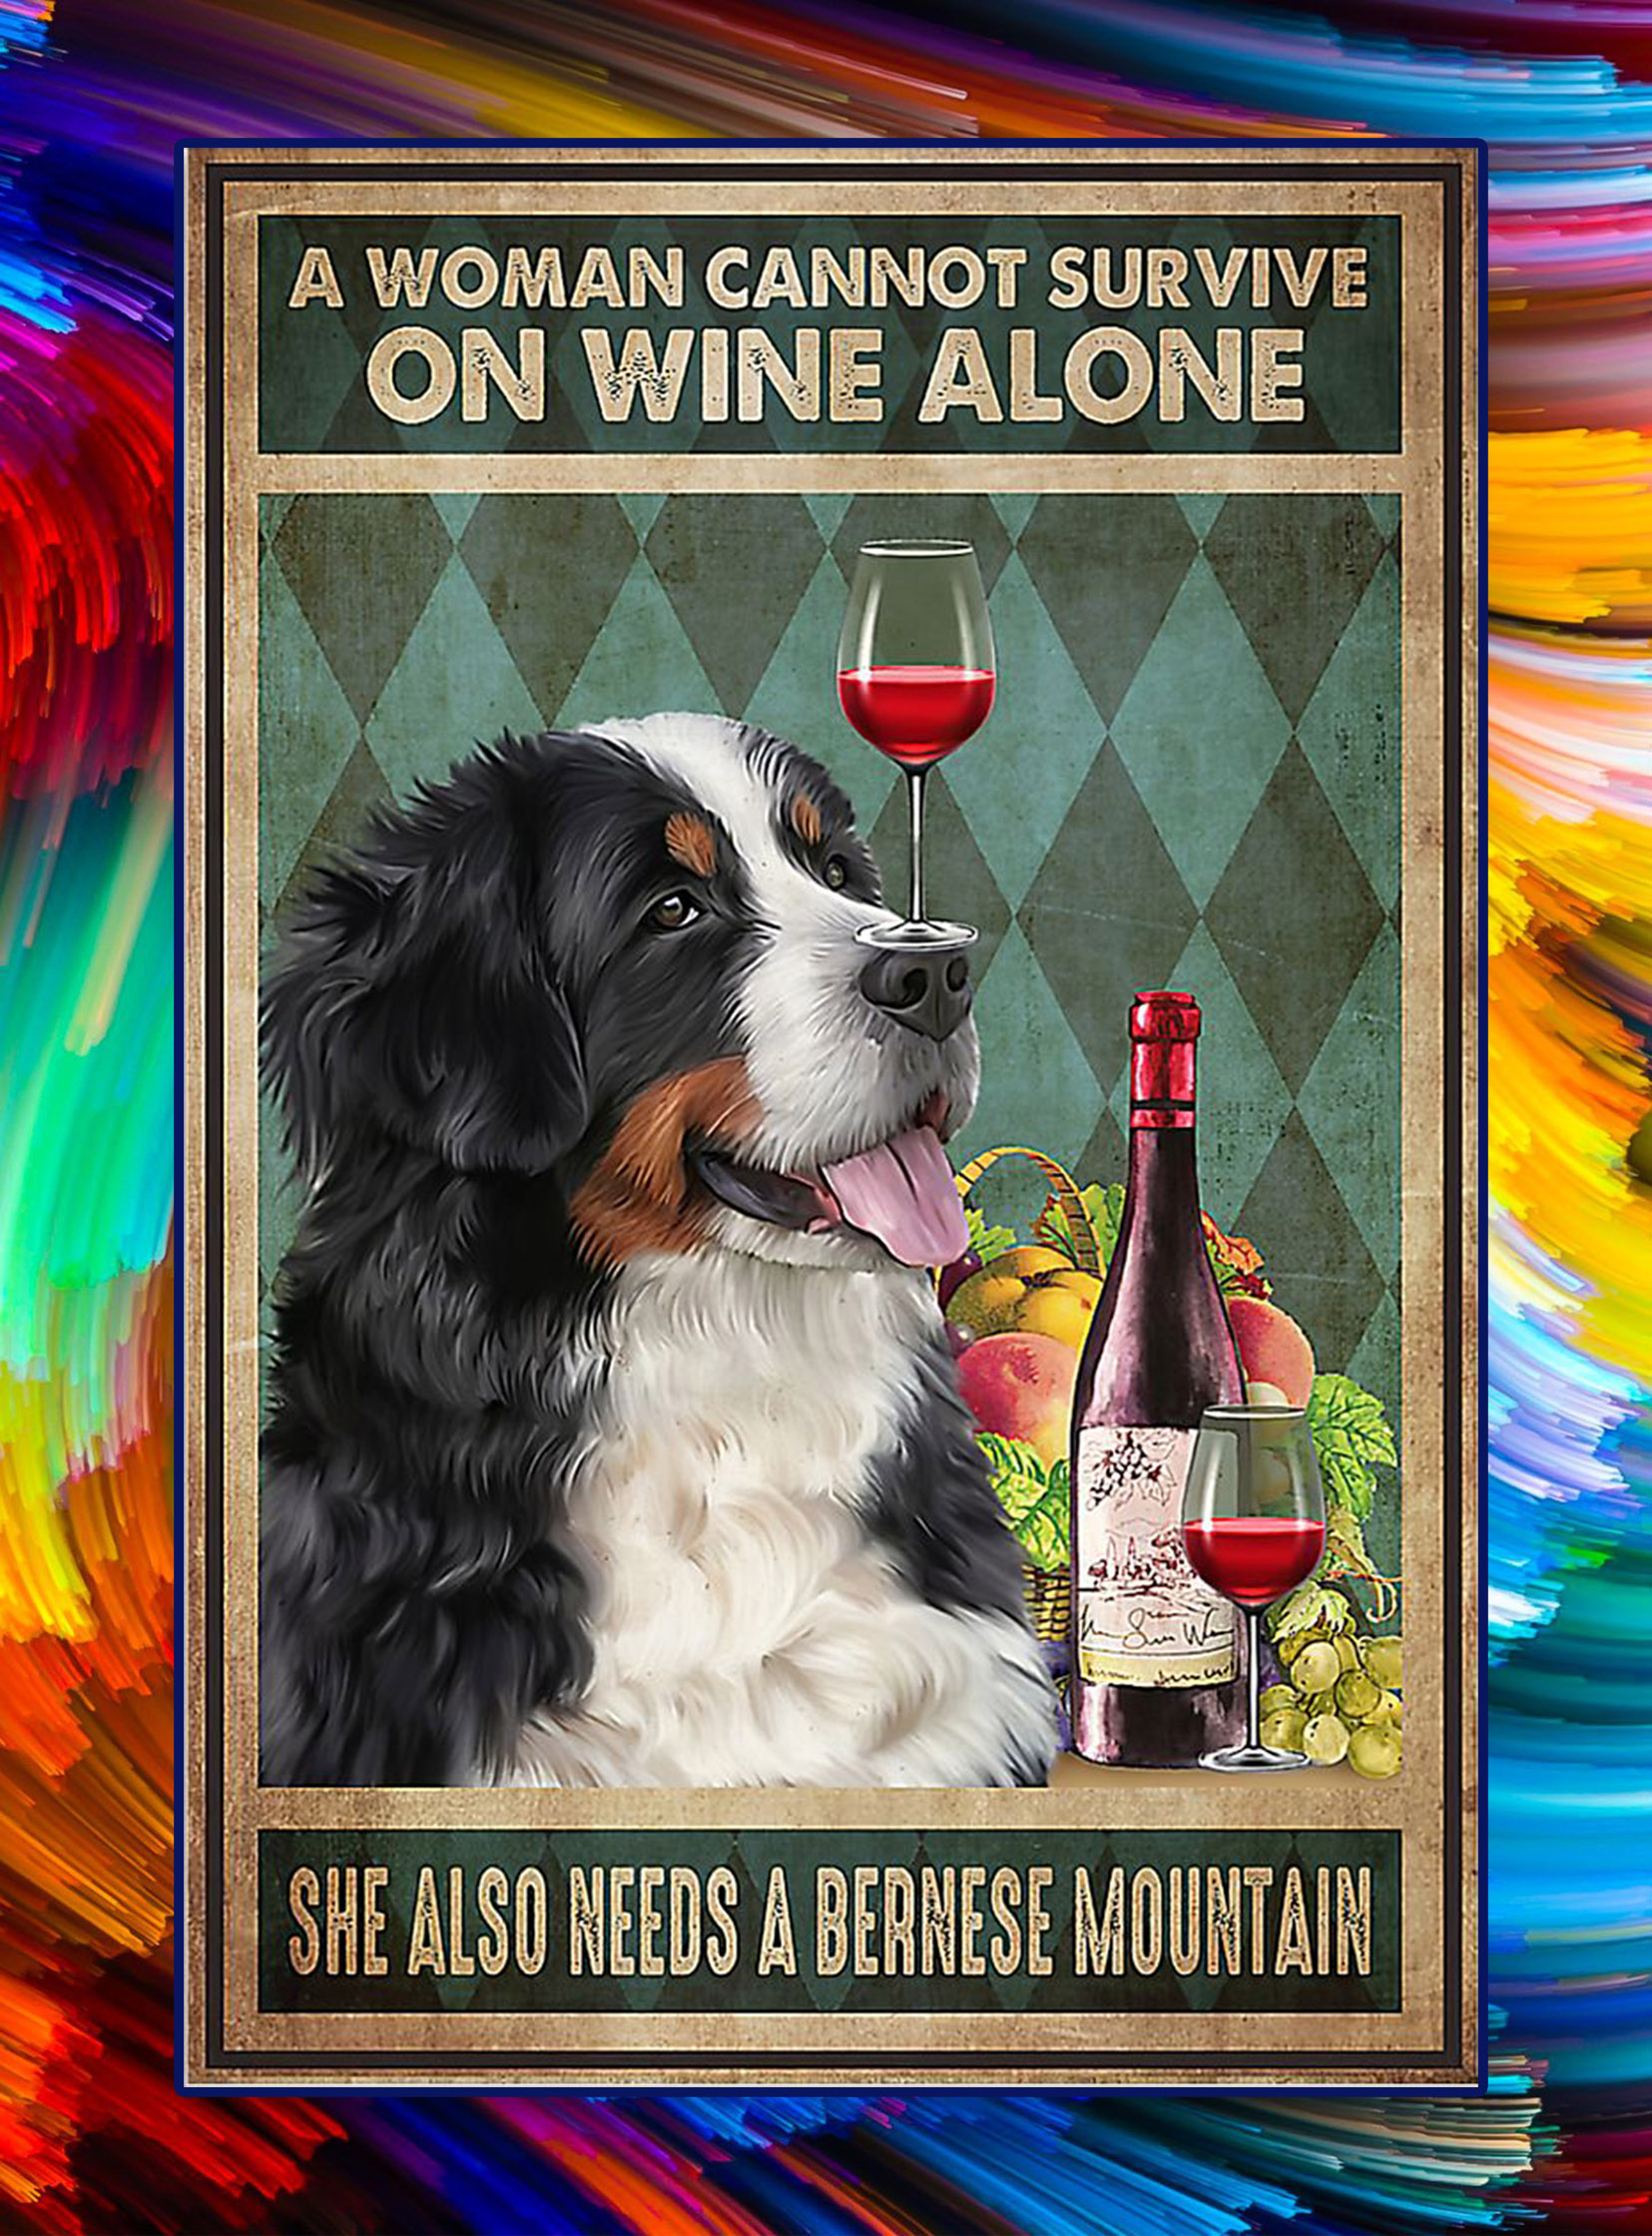 A woman cannot survive on wine alone she also needs a bernese mountain poster - A2